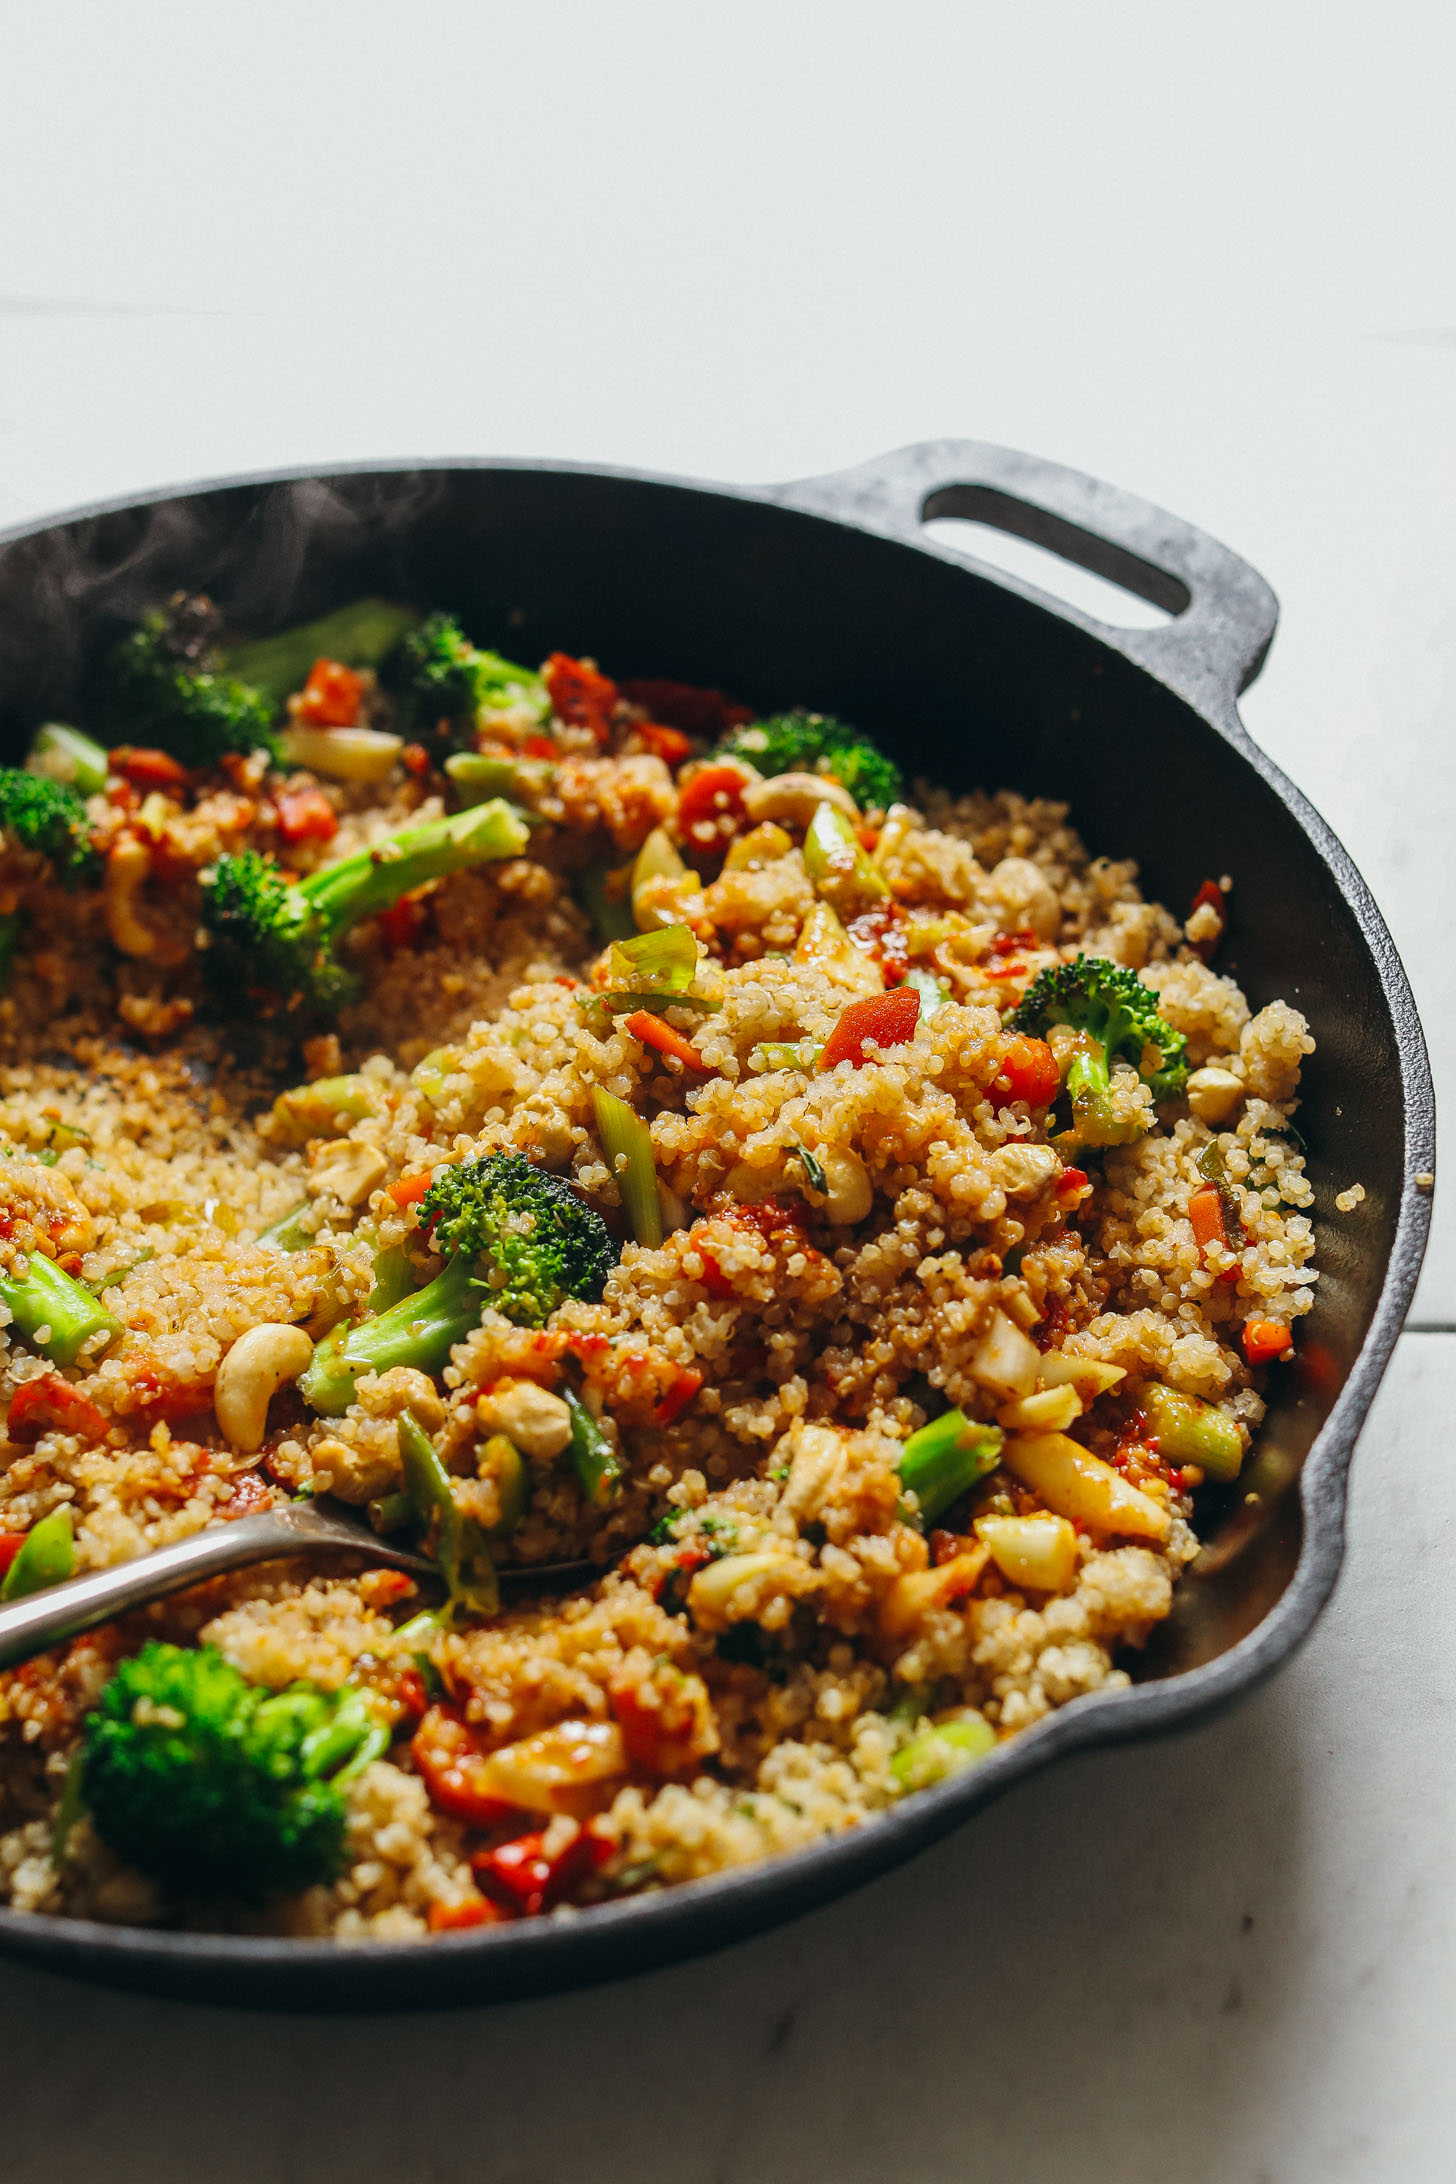 hot skillet with vegan quinoa fried rice